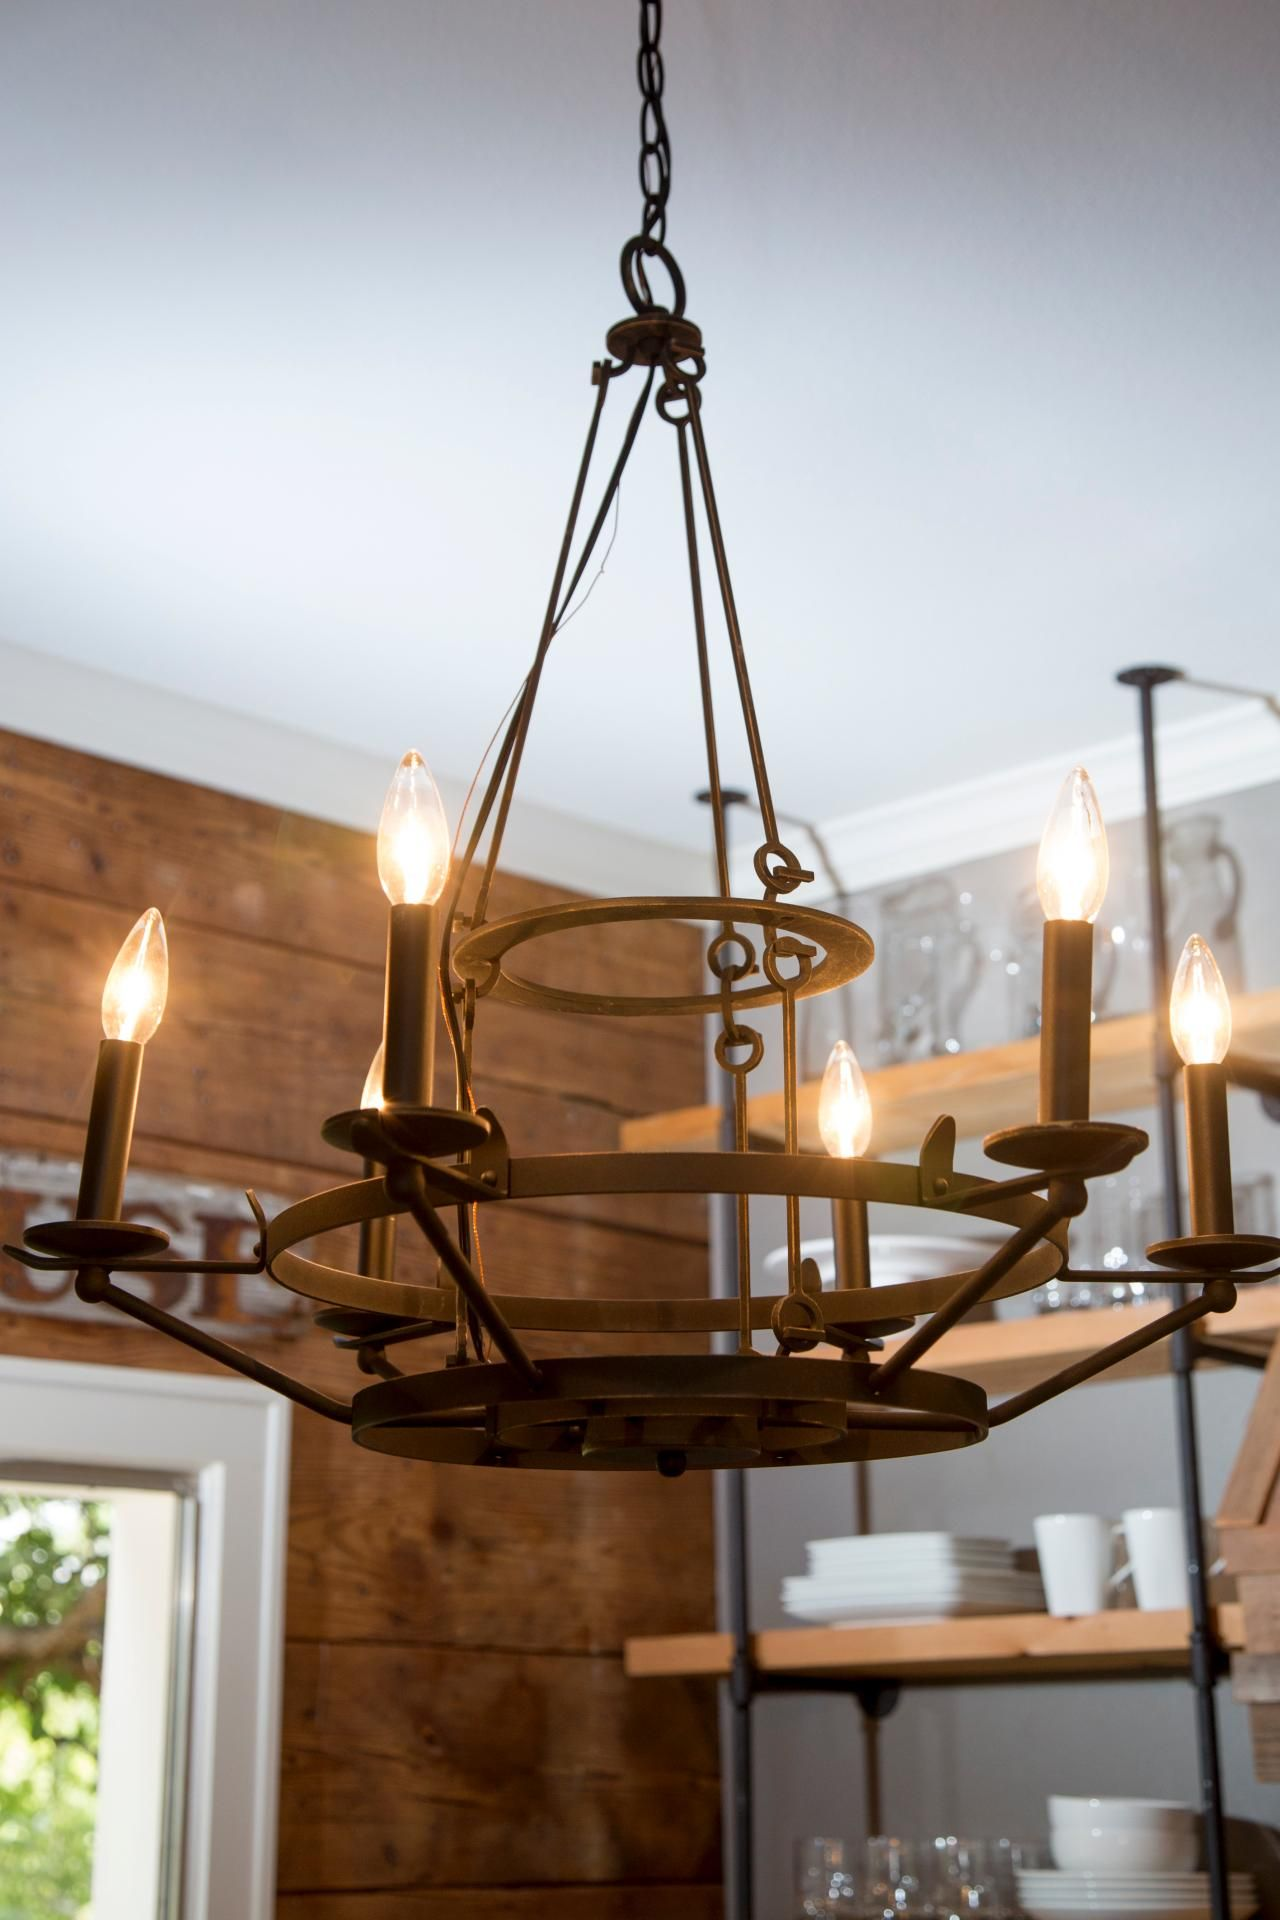 fixer upper a craftsman remodel for coffeehouse owners for the home pinterest wohnen. Black Bedroom Furniture Sets. Home Design Ideas